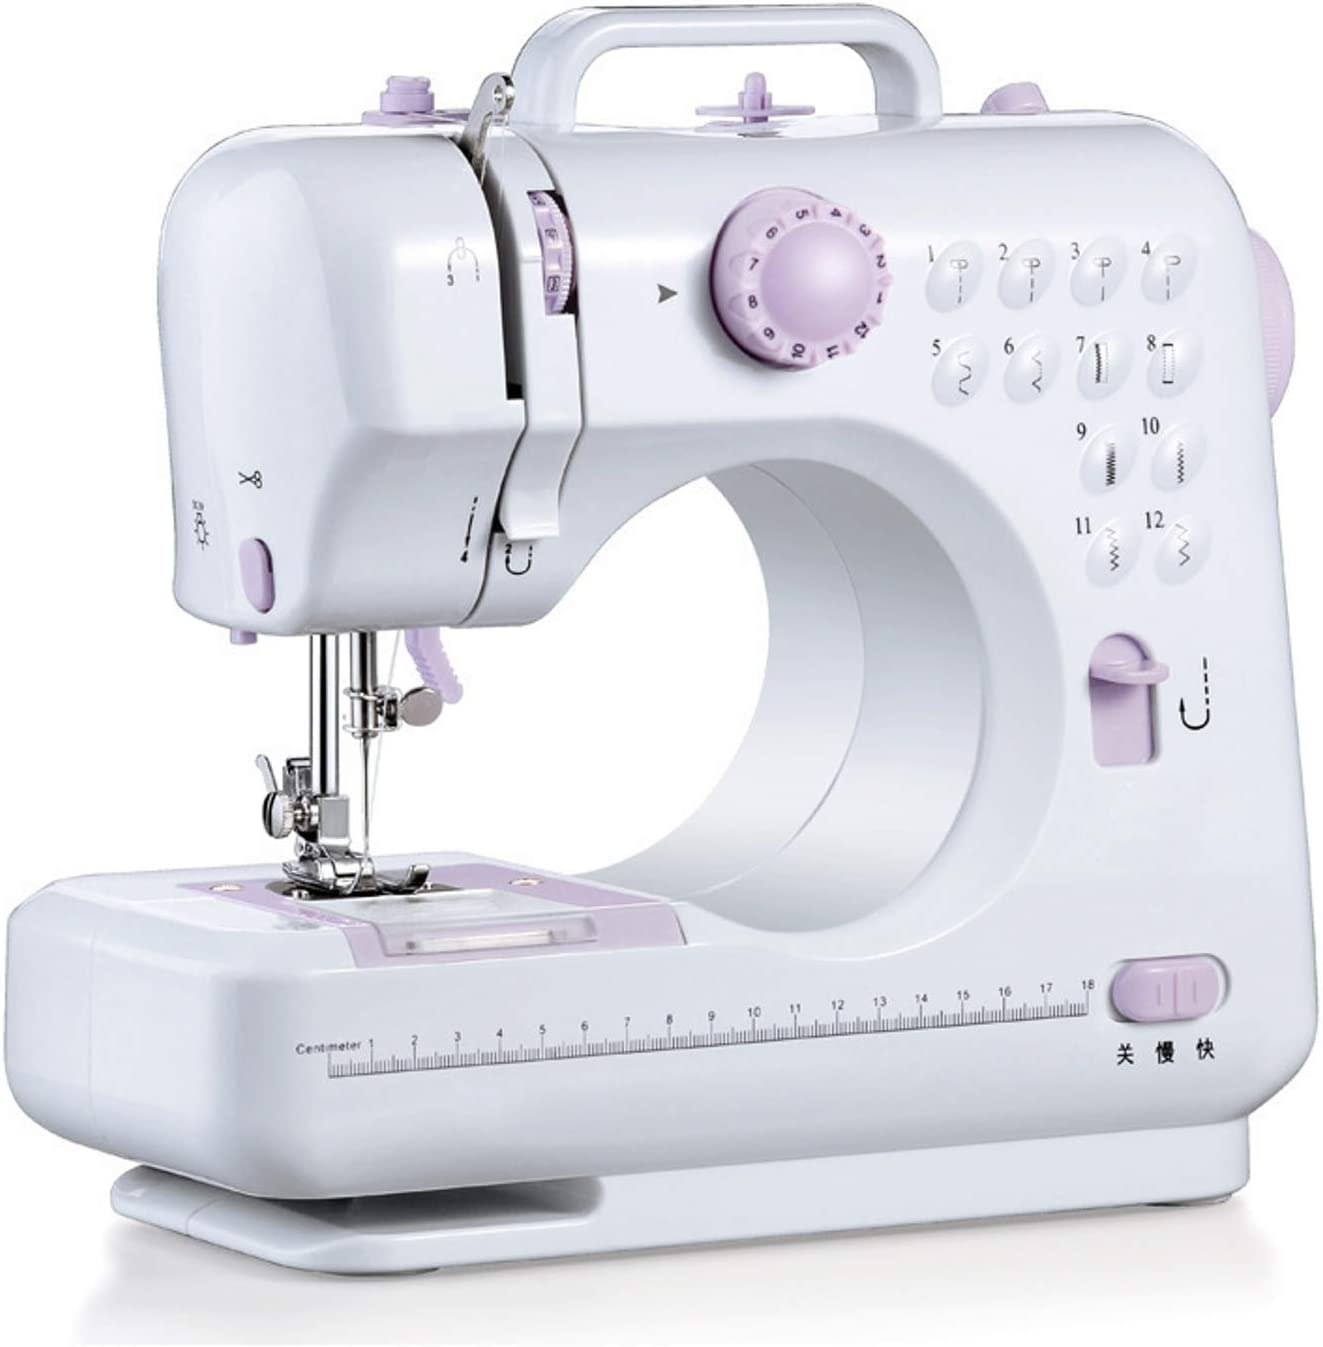 Multifunction Portable Large-scale sale Desktop Electric Household Machine Special sale item Sewing